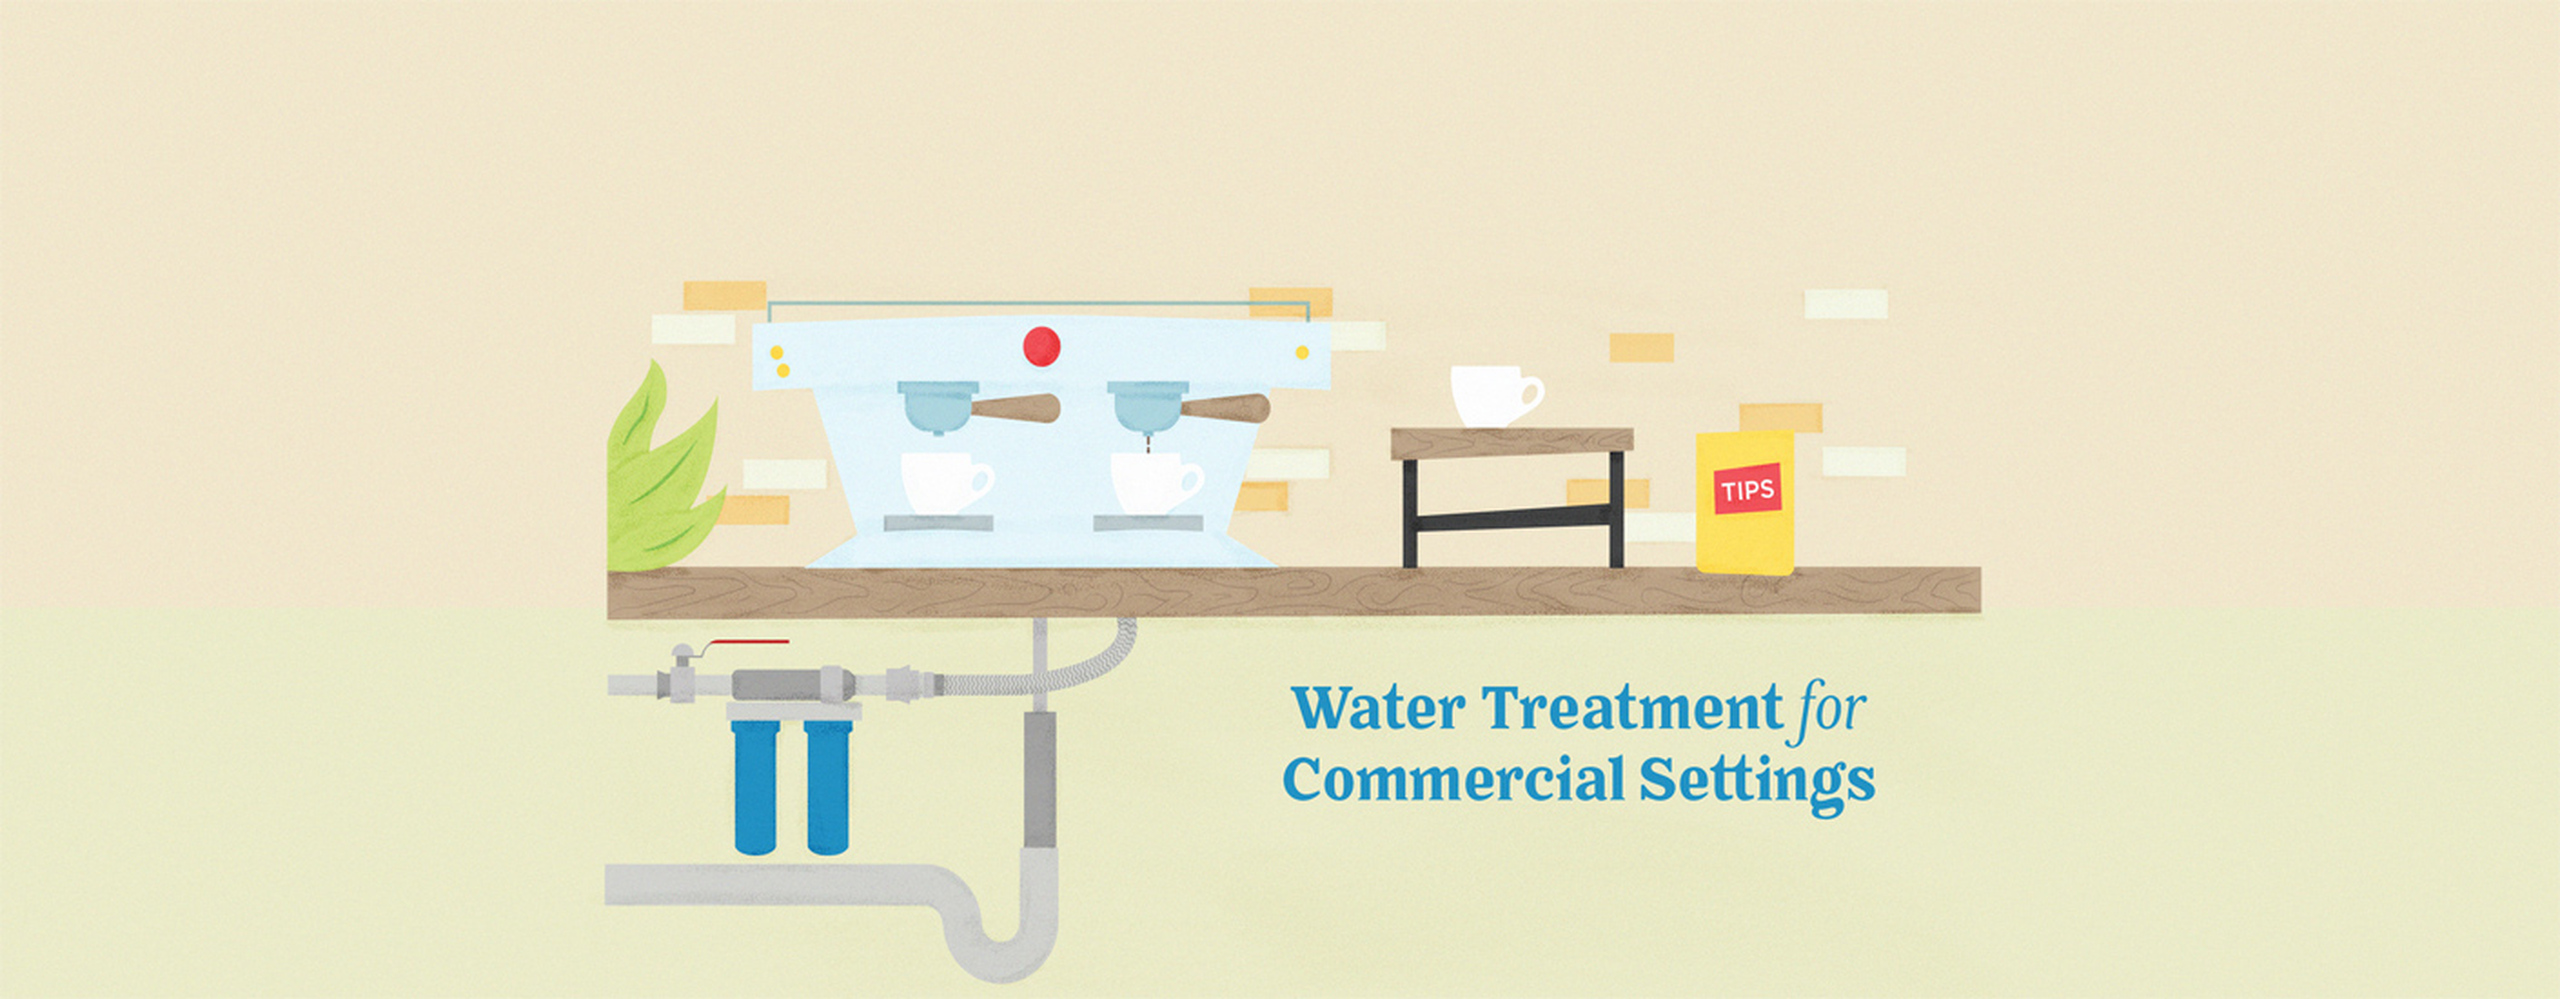 Water Treatment for Commercial Settings